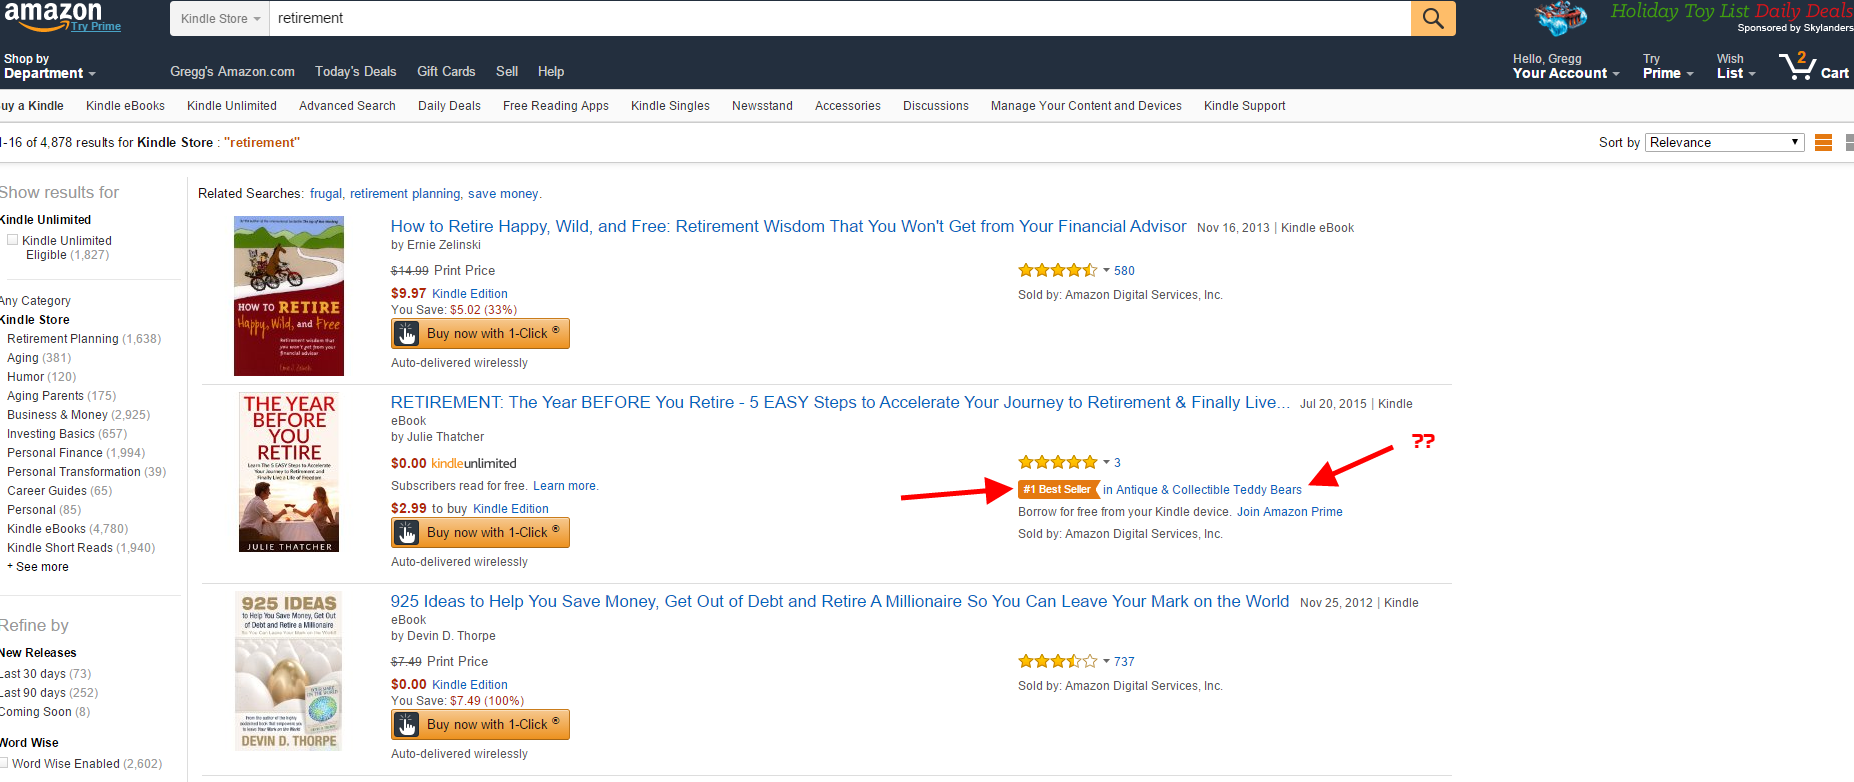 01 - Amazon Kindle SEO - scam example